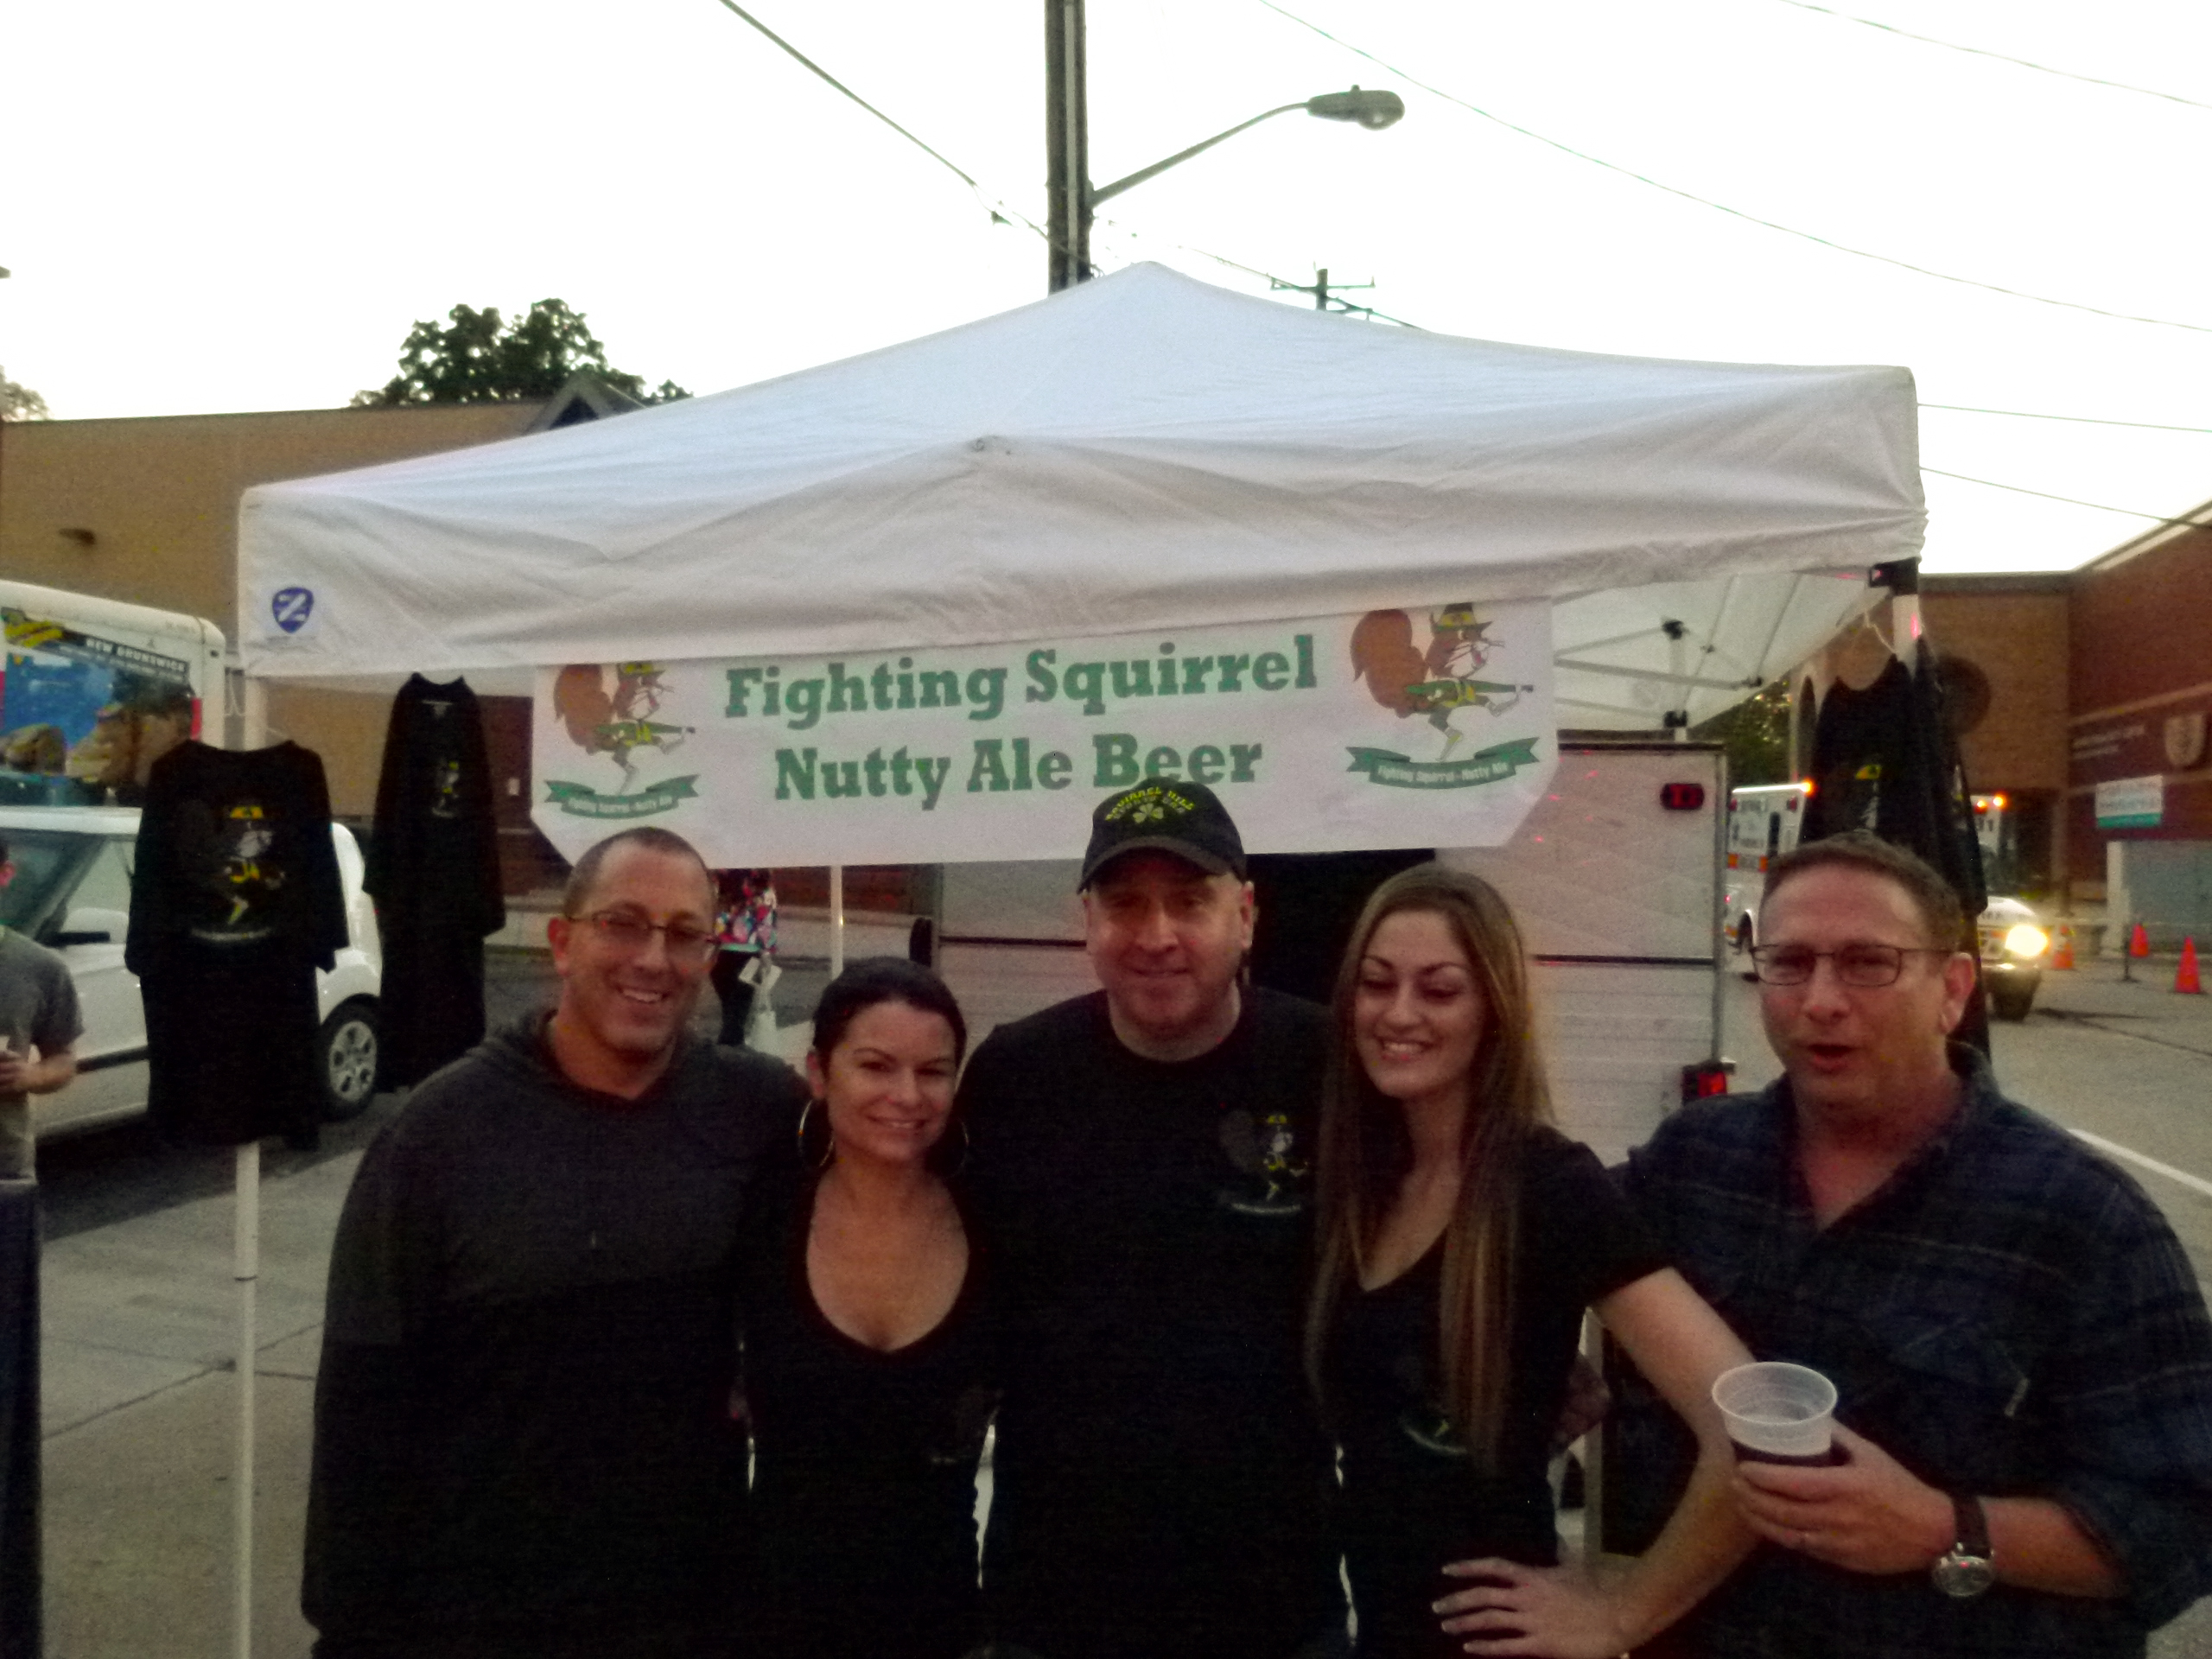 Squirrel Hill now has its own namesake beer, Fighting Squirrel Nutty Ale Beer. Brew owner, Barry White of the Squirrel Hill Sports Bar, seen here with his beer girls Jenn Niedermeyer (l.) and Amanda Coe (r.) and brother's Kenny Holtzman (l.) and Gregg Holtzman (r.)